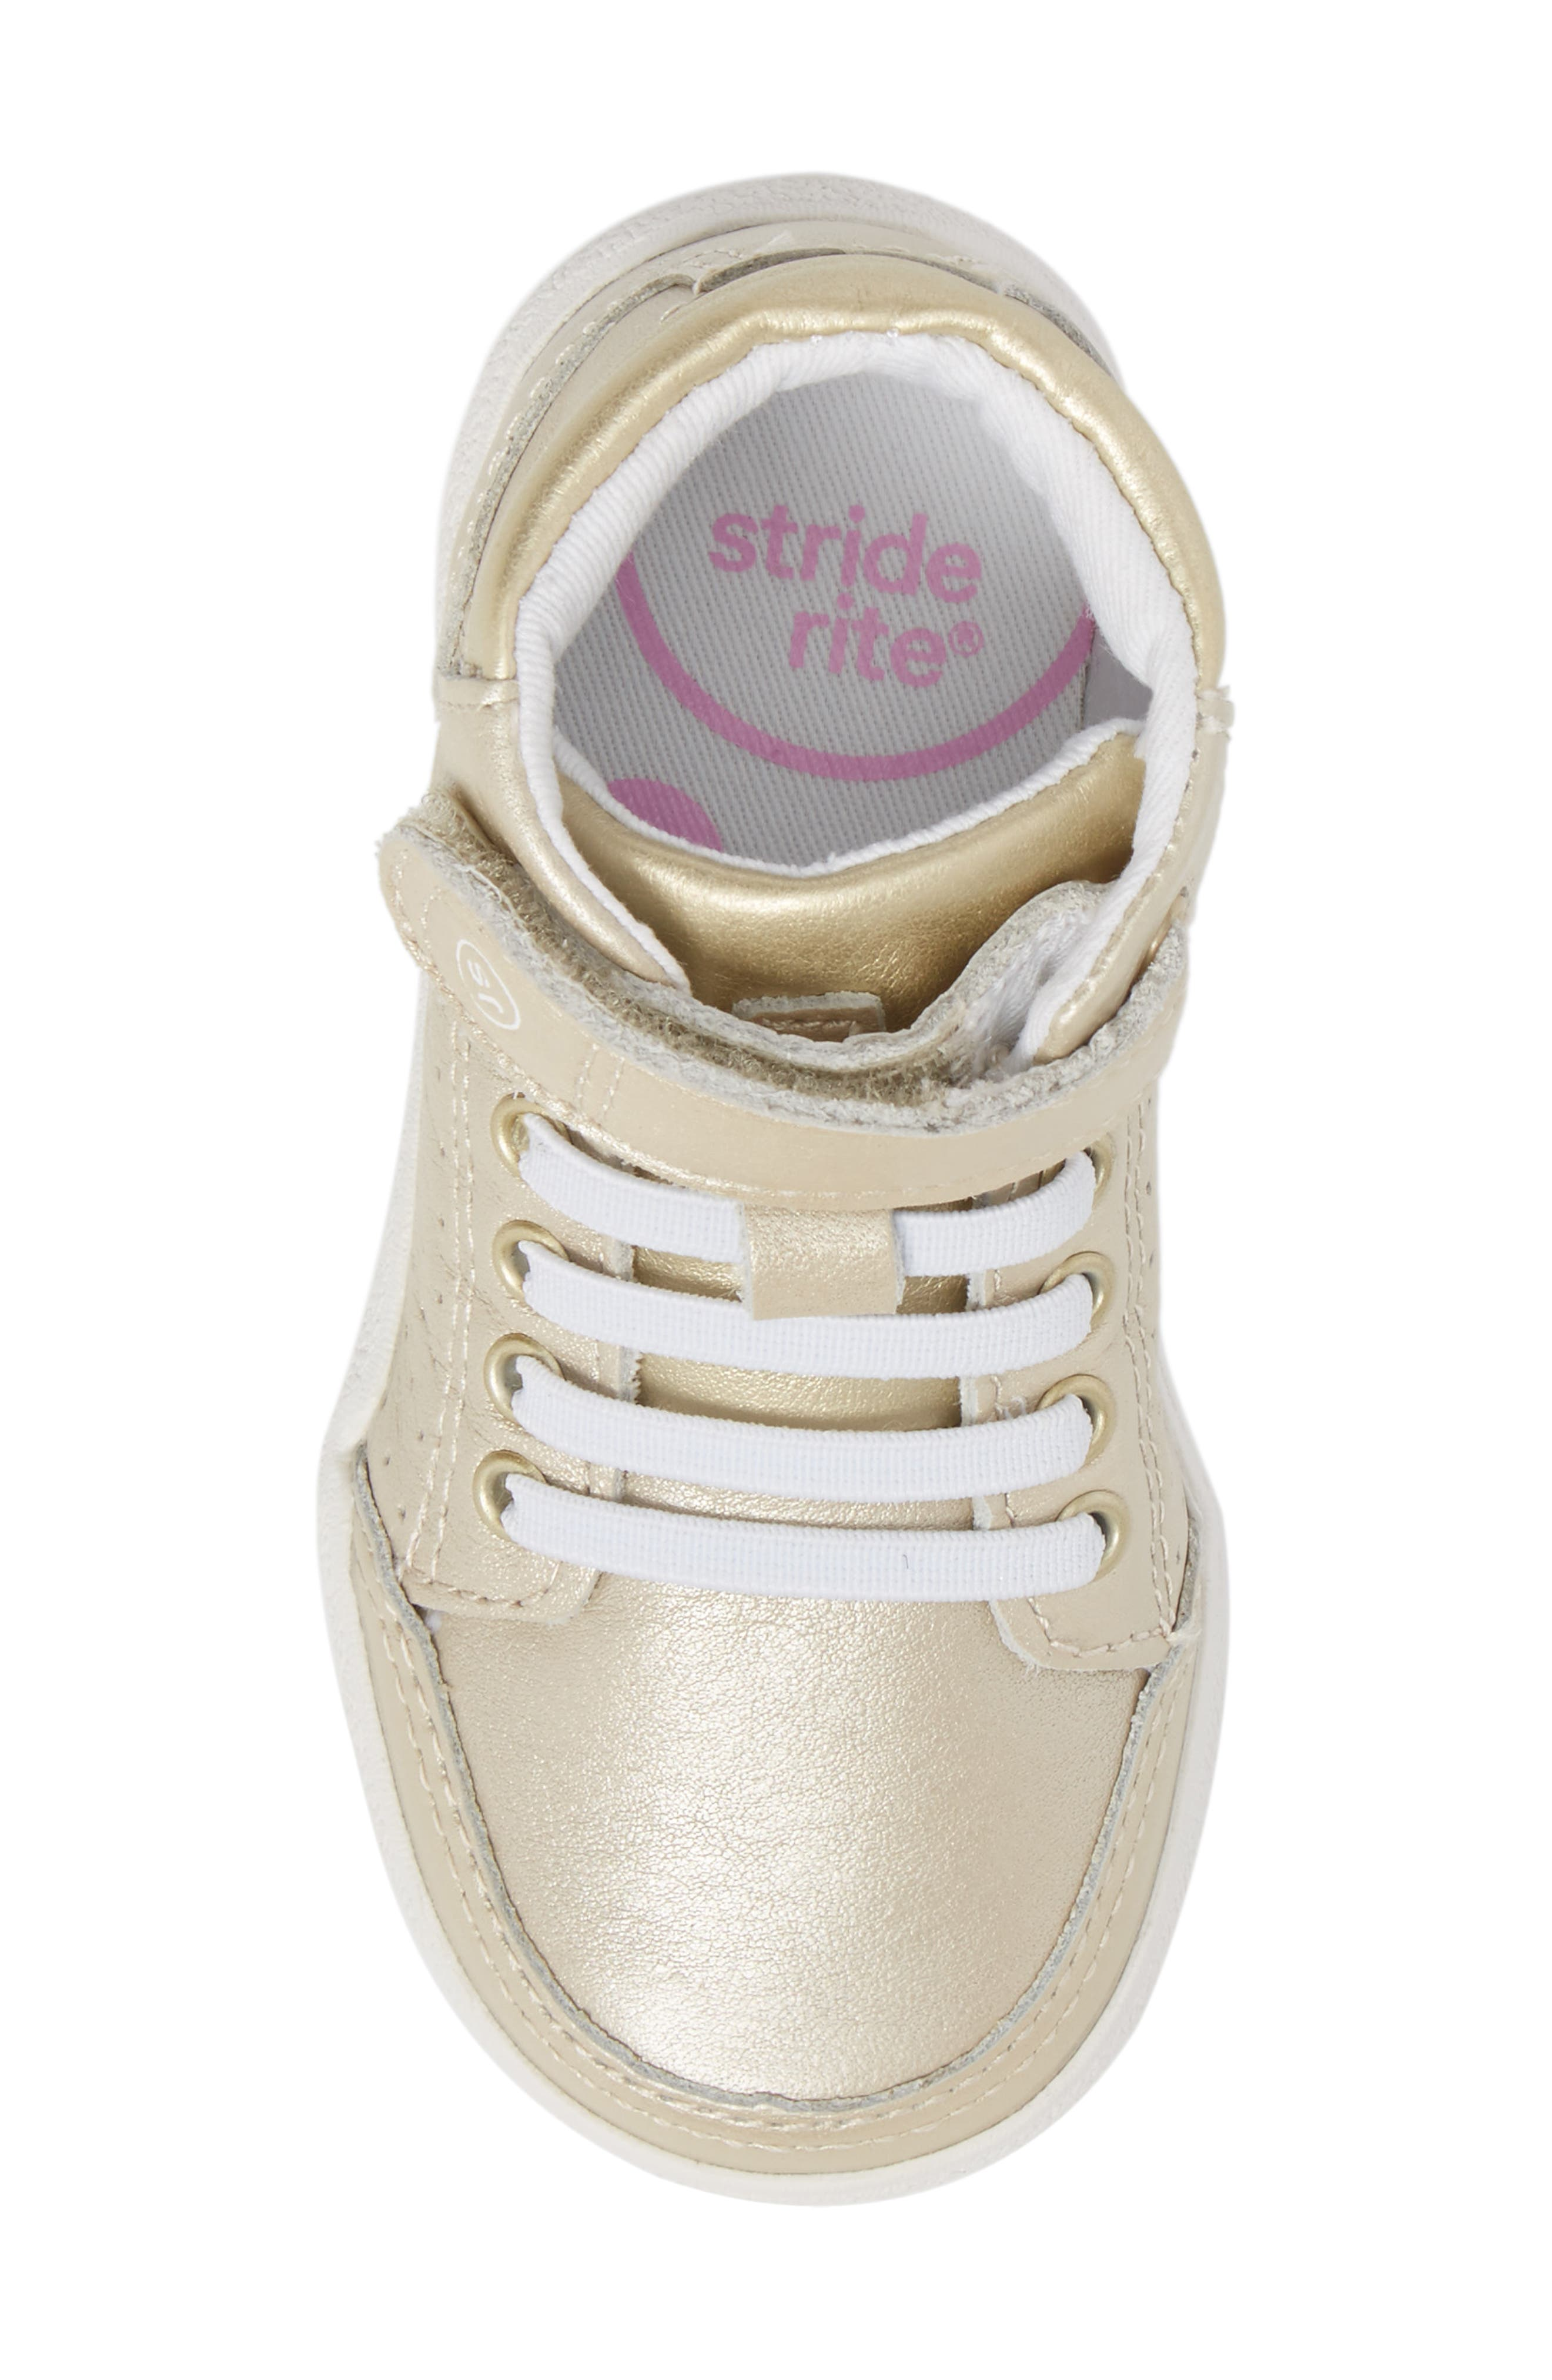 Stone High Top Sneaker,                             Alternate thumbnail 5, color,                             Champagne Leather